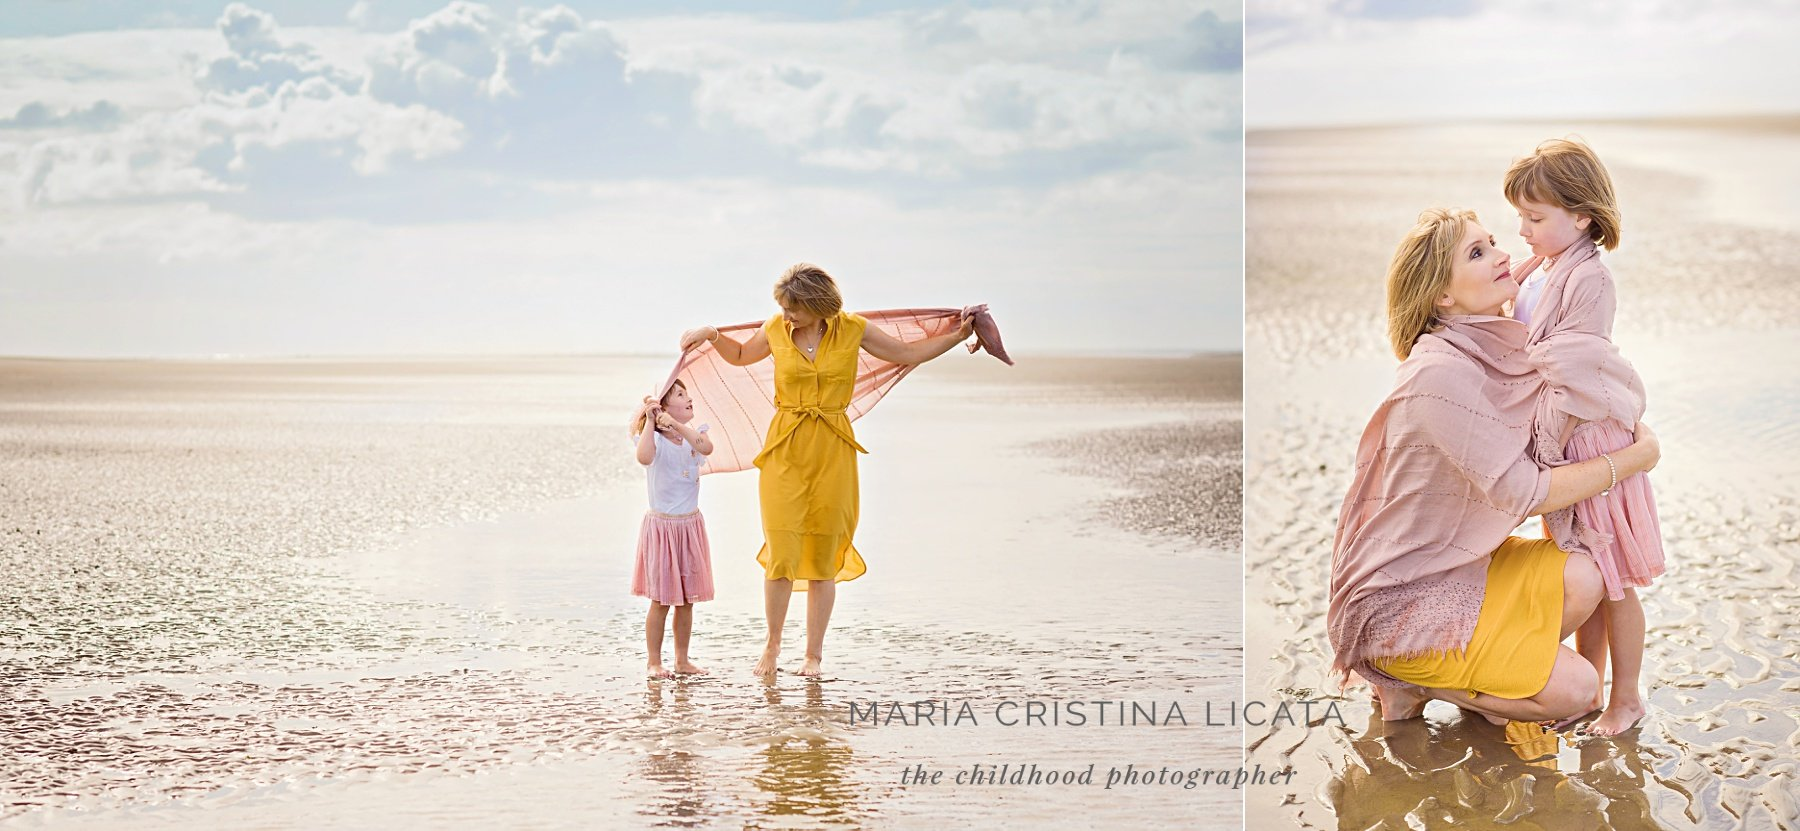 beach photo session family Hampshire